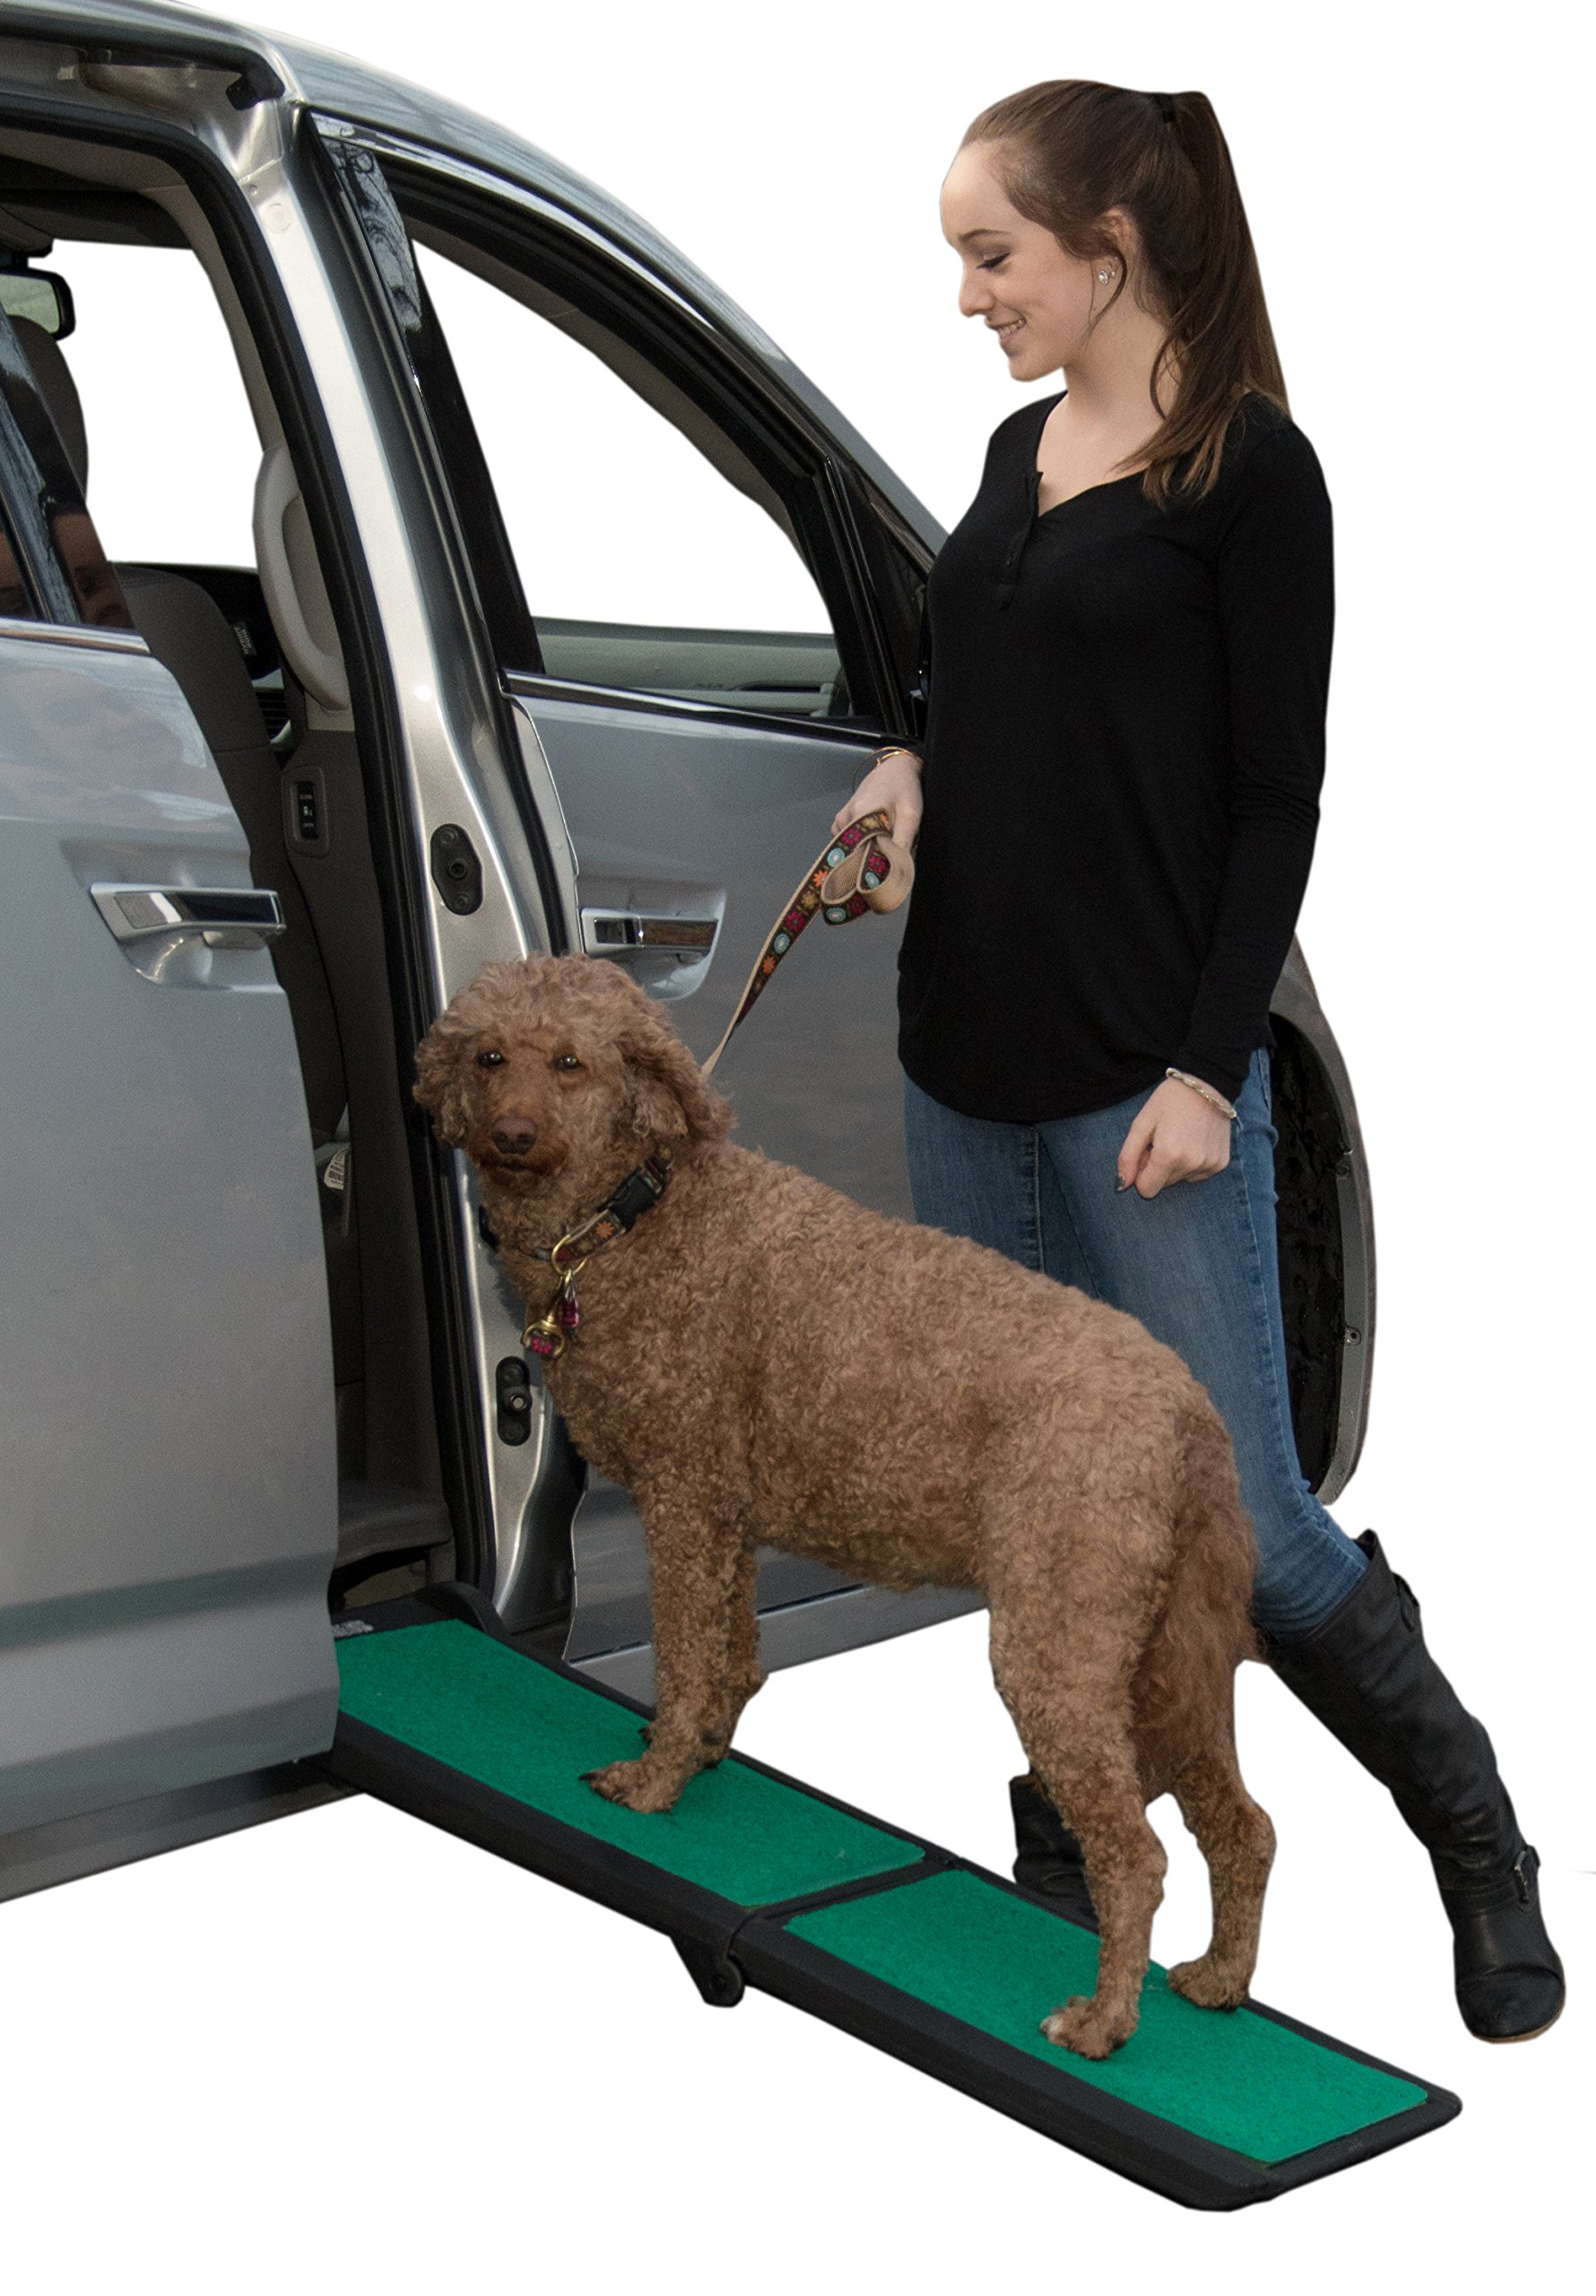 Pet Gear Travel Lite Ramp with supertraX Surface for Maximum Traction, 4 Models to Choose from, 42-71 in. Long, Supports 150-200 lbs, Find The Best Fit for Your Pet 1